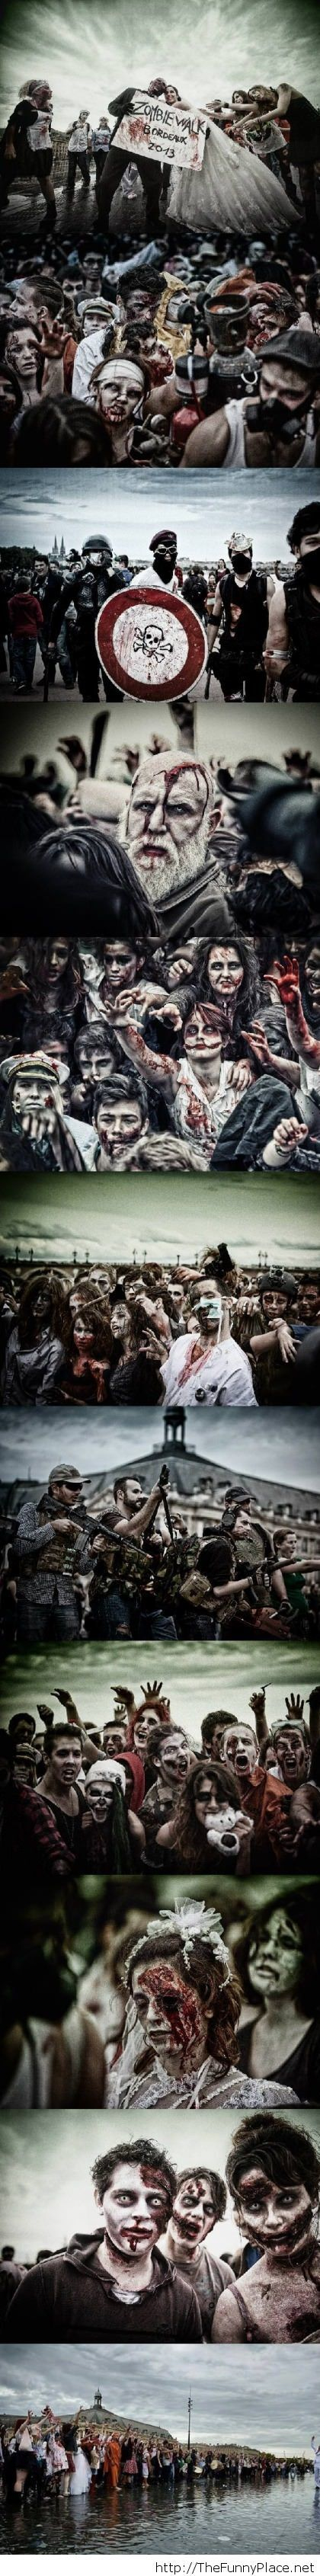 Zombies awesome pictures